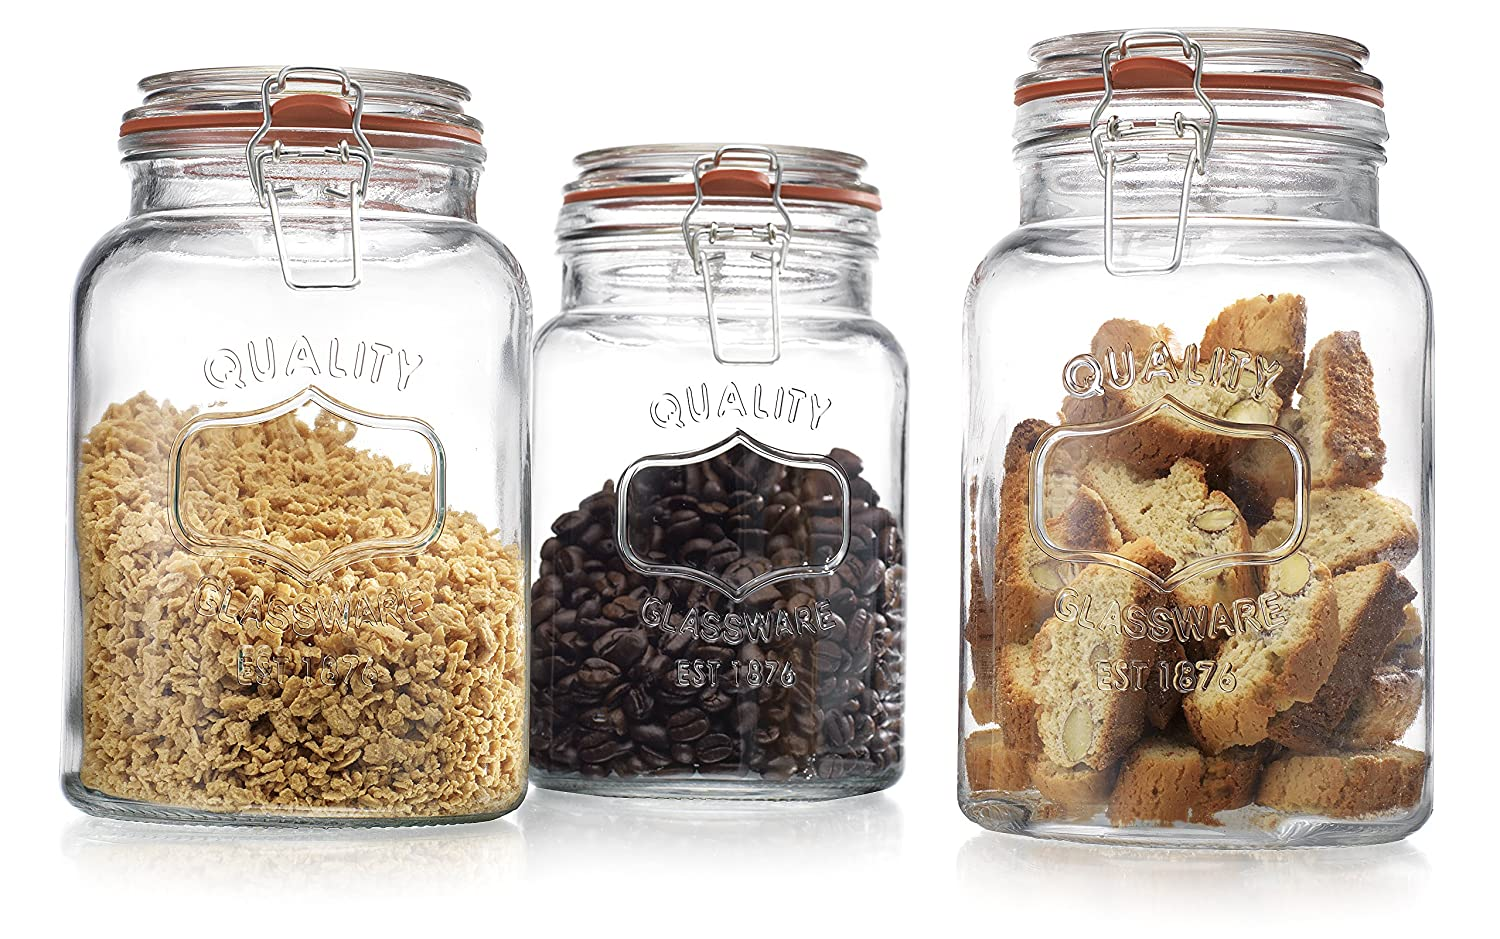 amazon com glass canister quality set of 3 clear round jar with amazon com glass canister quality set of 3 clear round jar with hermetic seal bail trigger airtight lock for kitchen food storage containers home